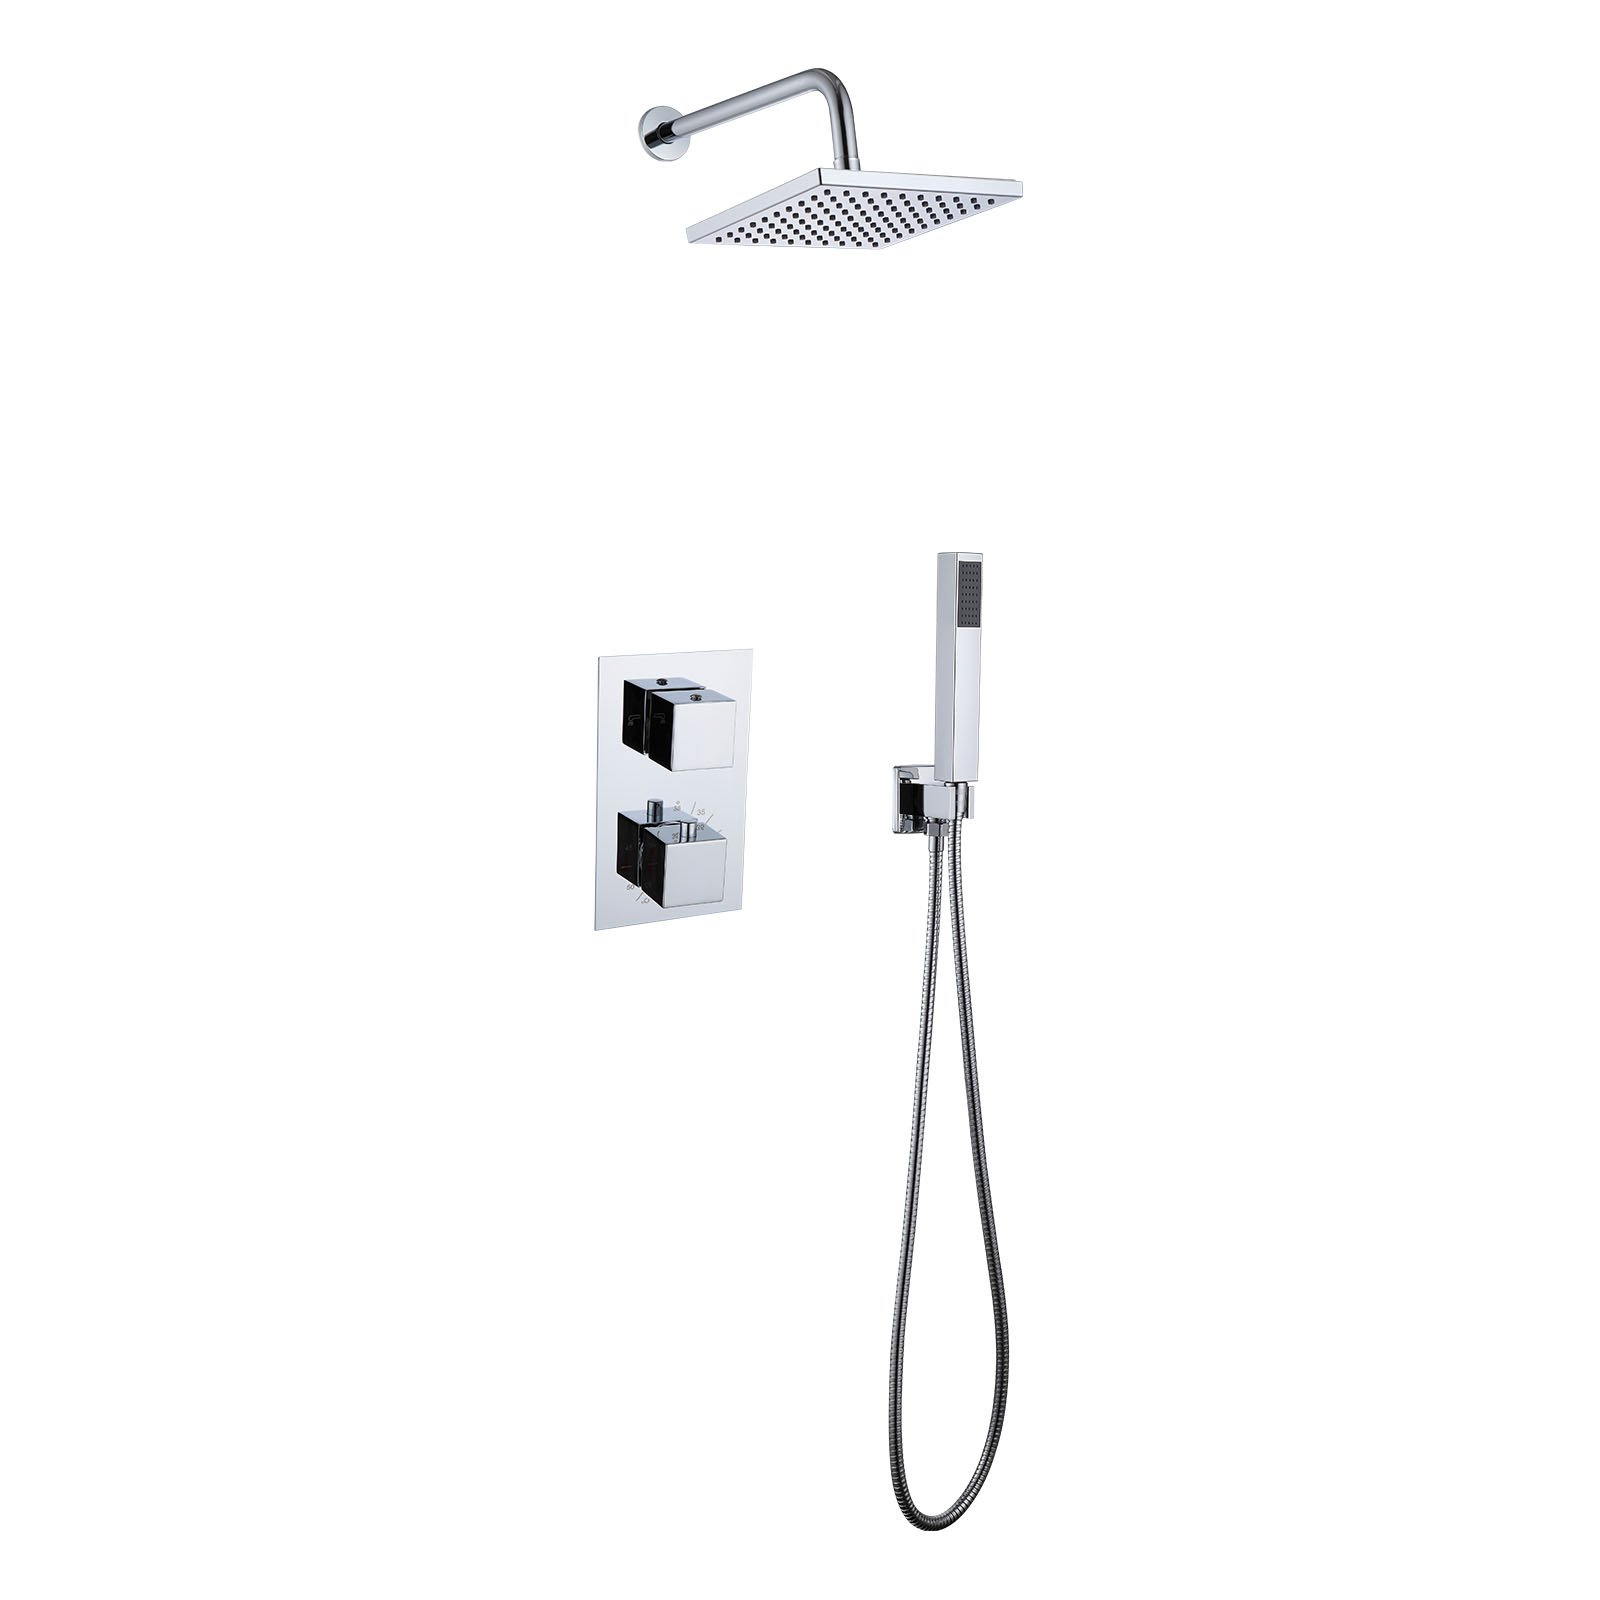 ABS Rain Head Wall Arm /& Concealed Shower Mixer Valve Black 9 inch Shower Set